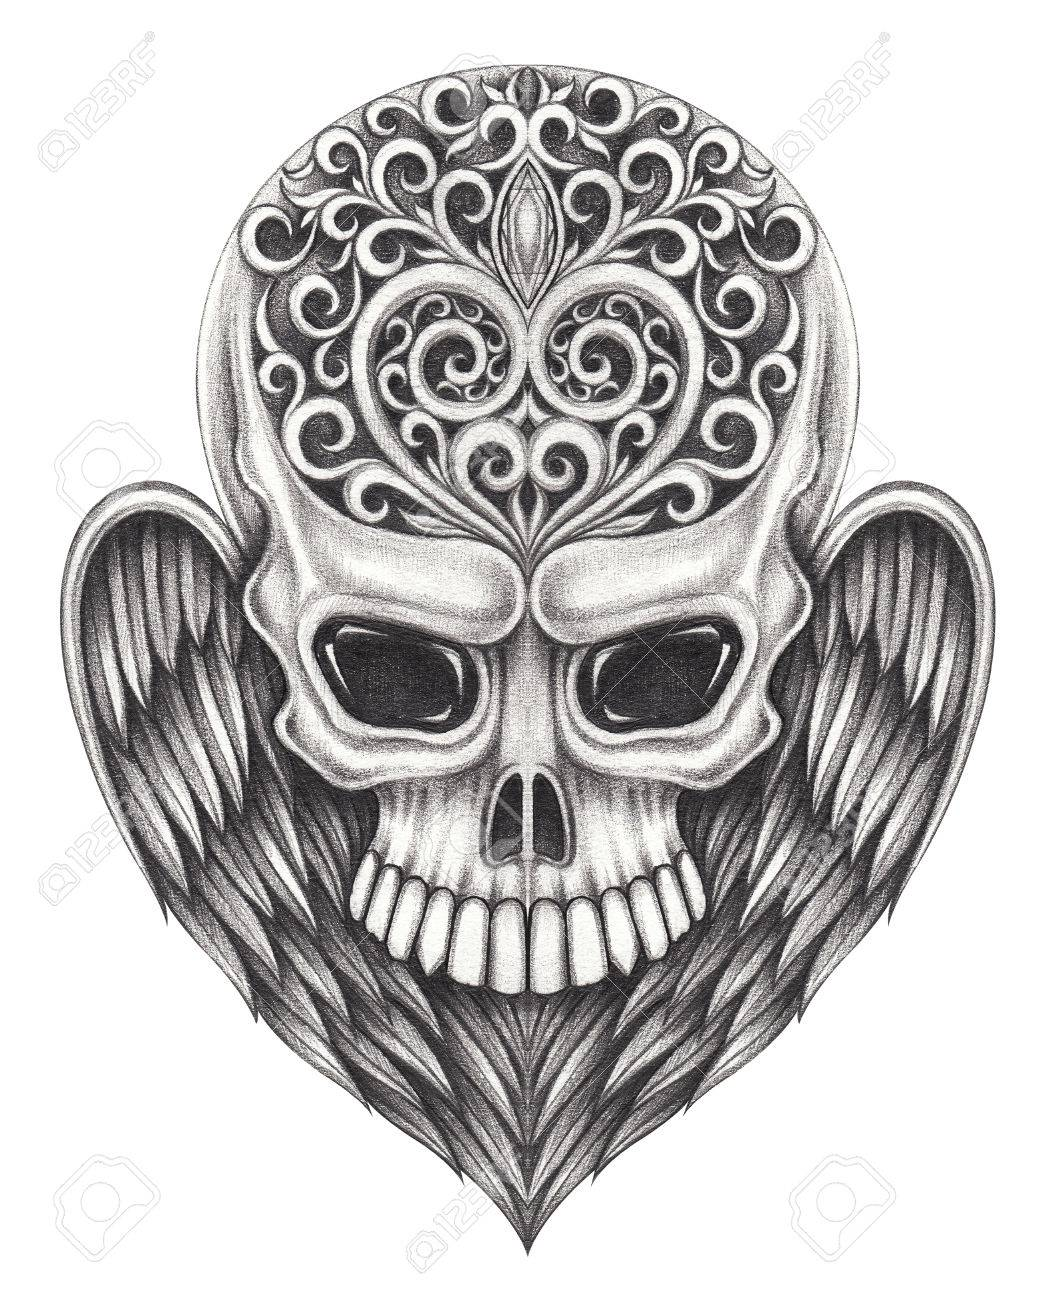 Skull wings angel tattoo hand pencil drawing on paper stock photo 66708291